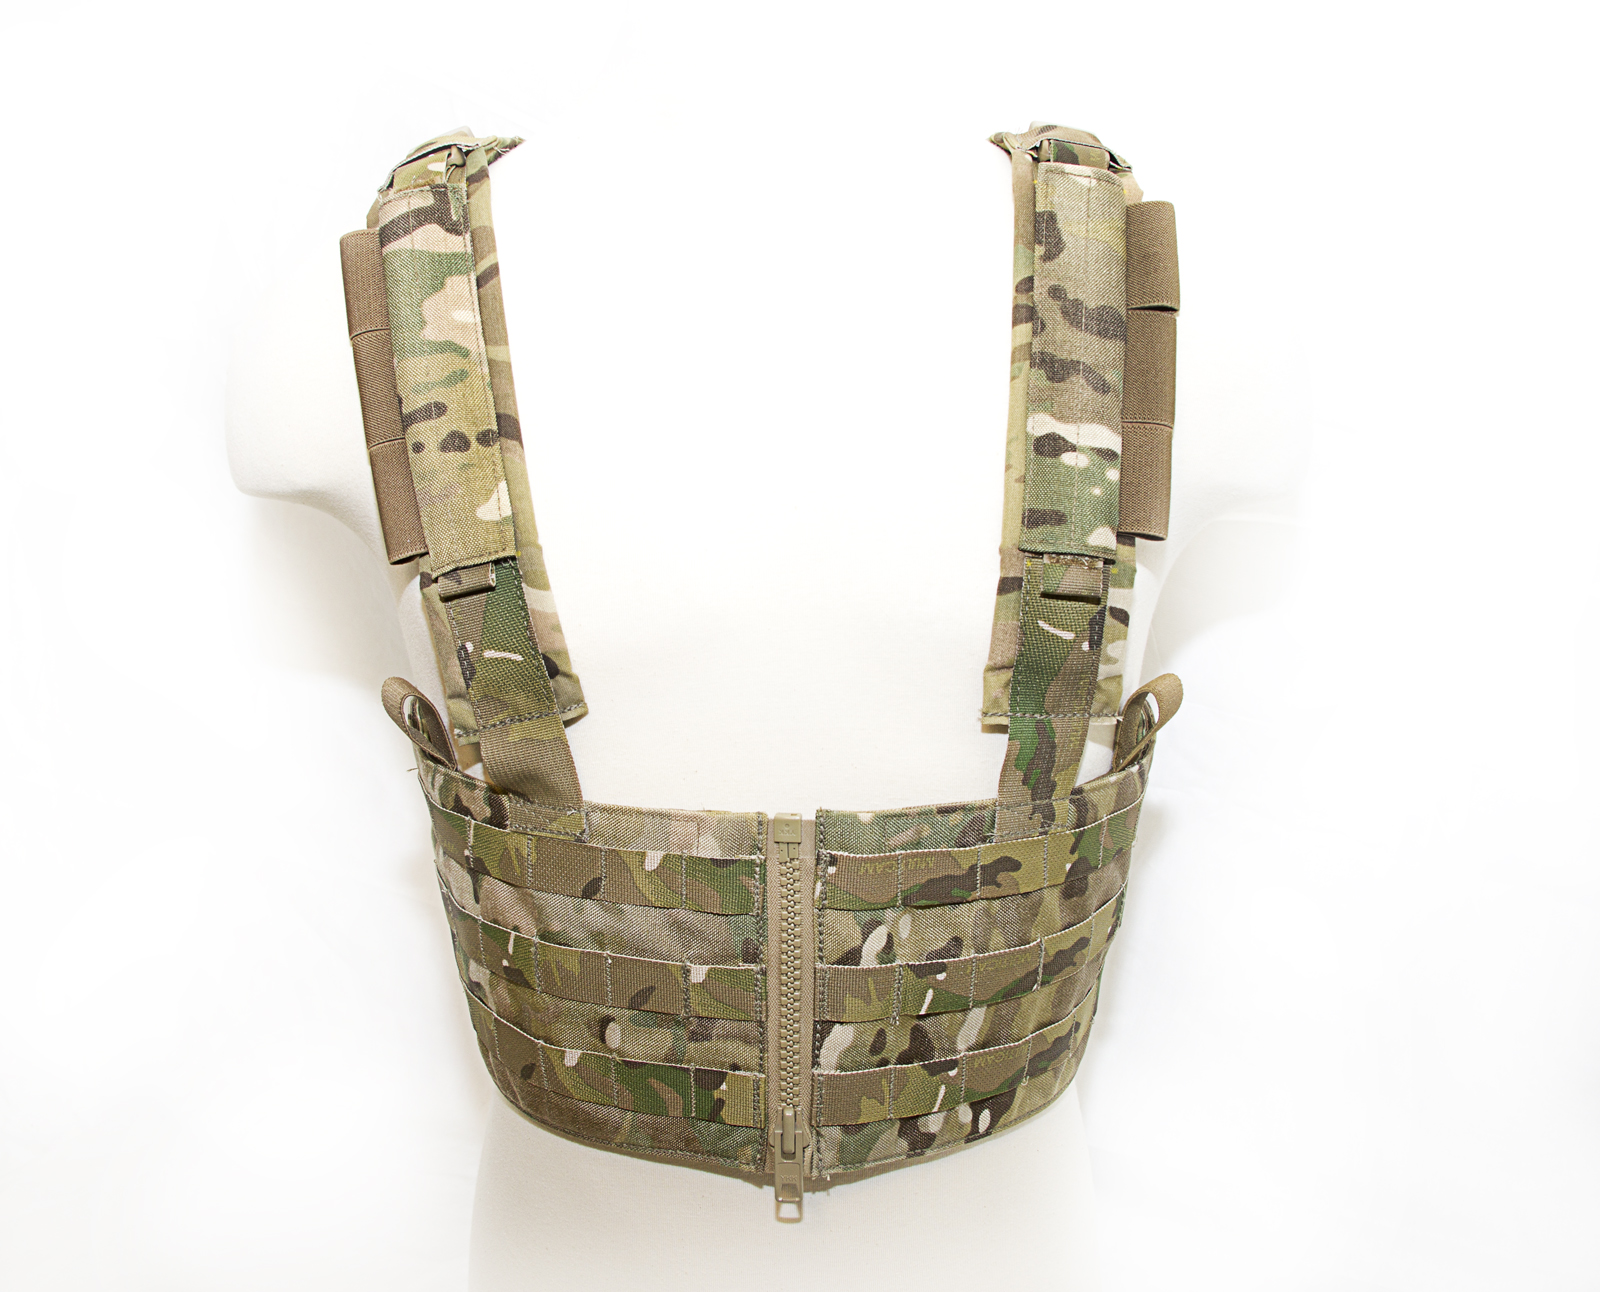 Wolfpack Gear USAR Load Bearing Harness in addition RECON HARNESS as well Dmm Revolver Screwgate Carabinerpulley in addition N  1 50680 also Black Recon Tactical Fleece. on tactical chest harness